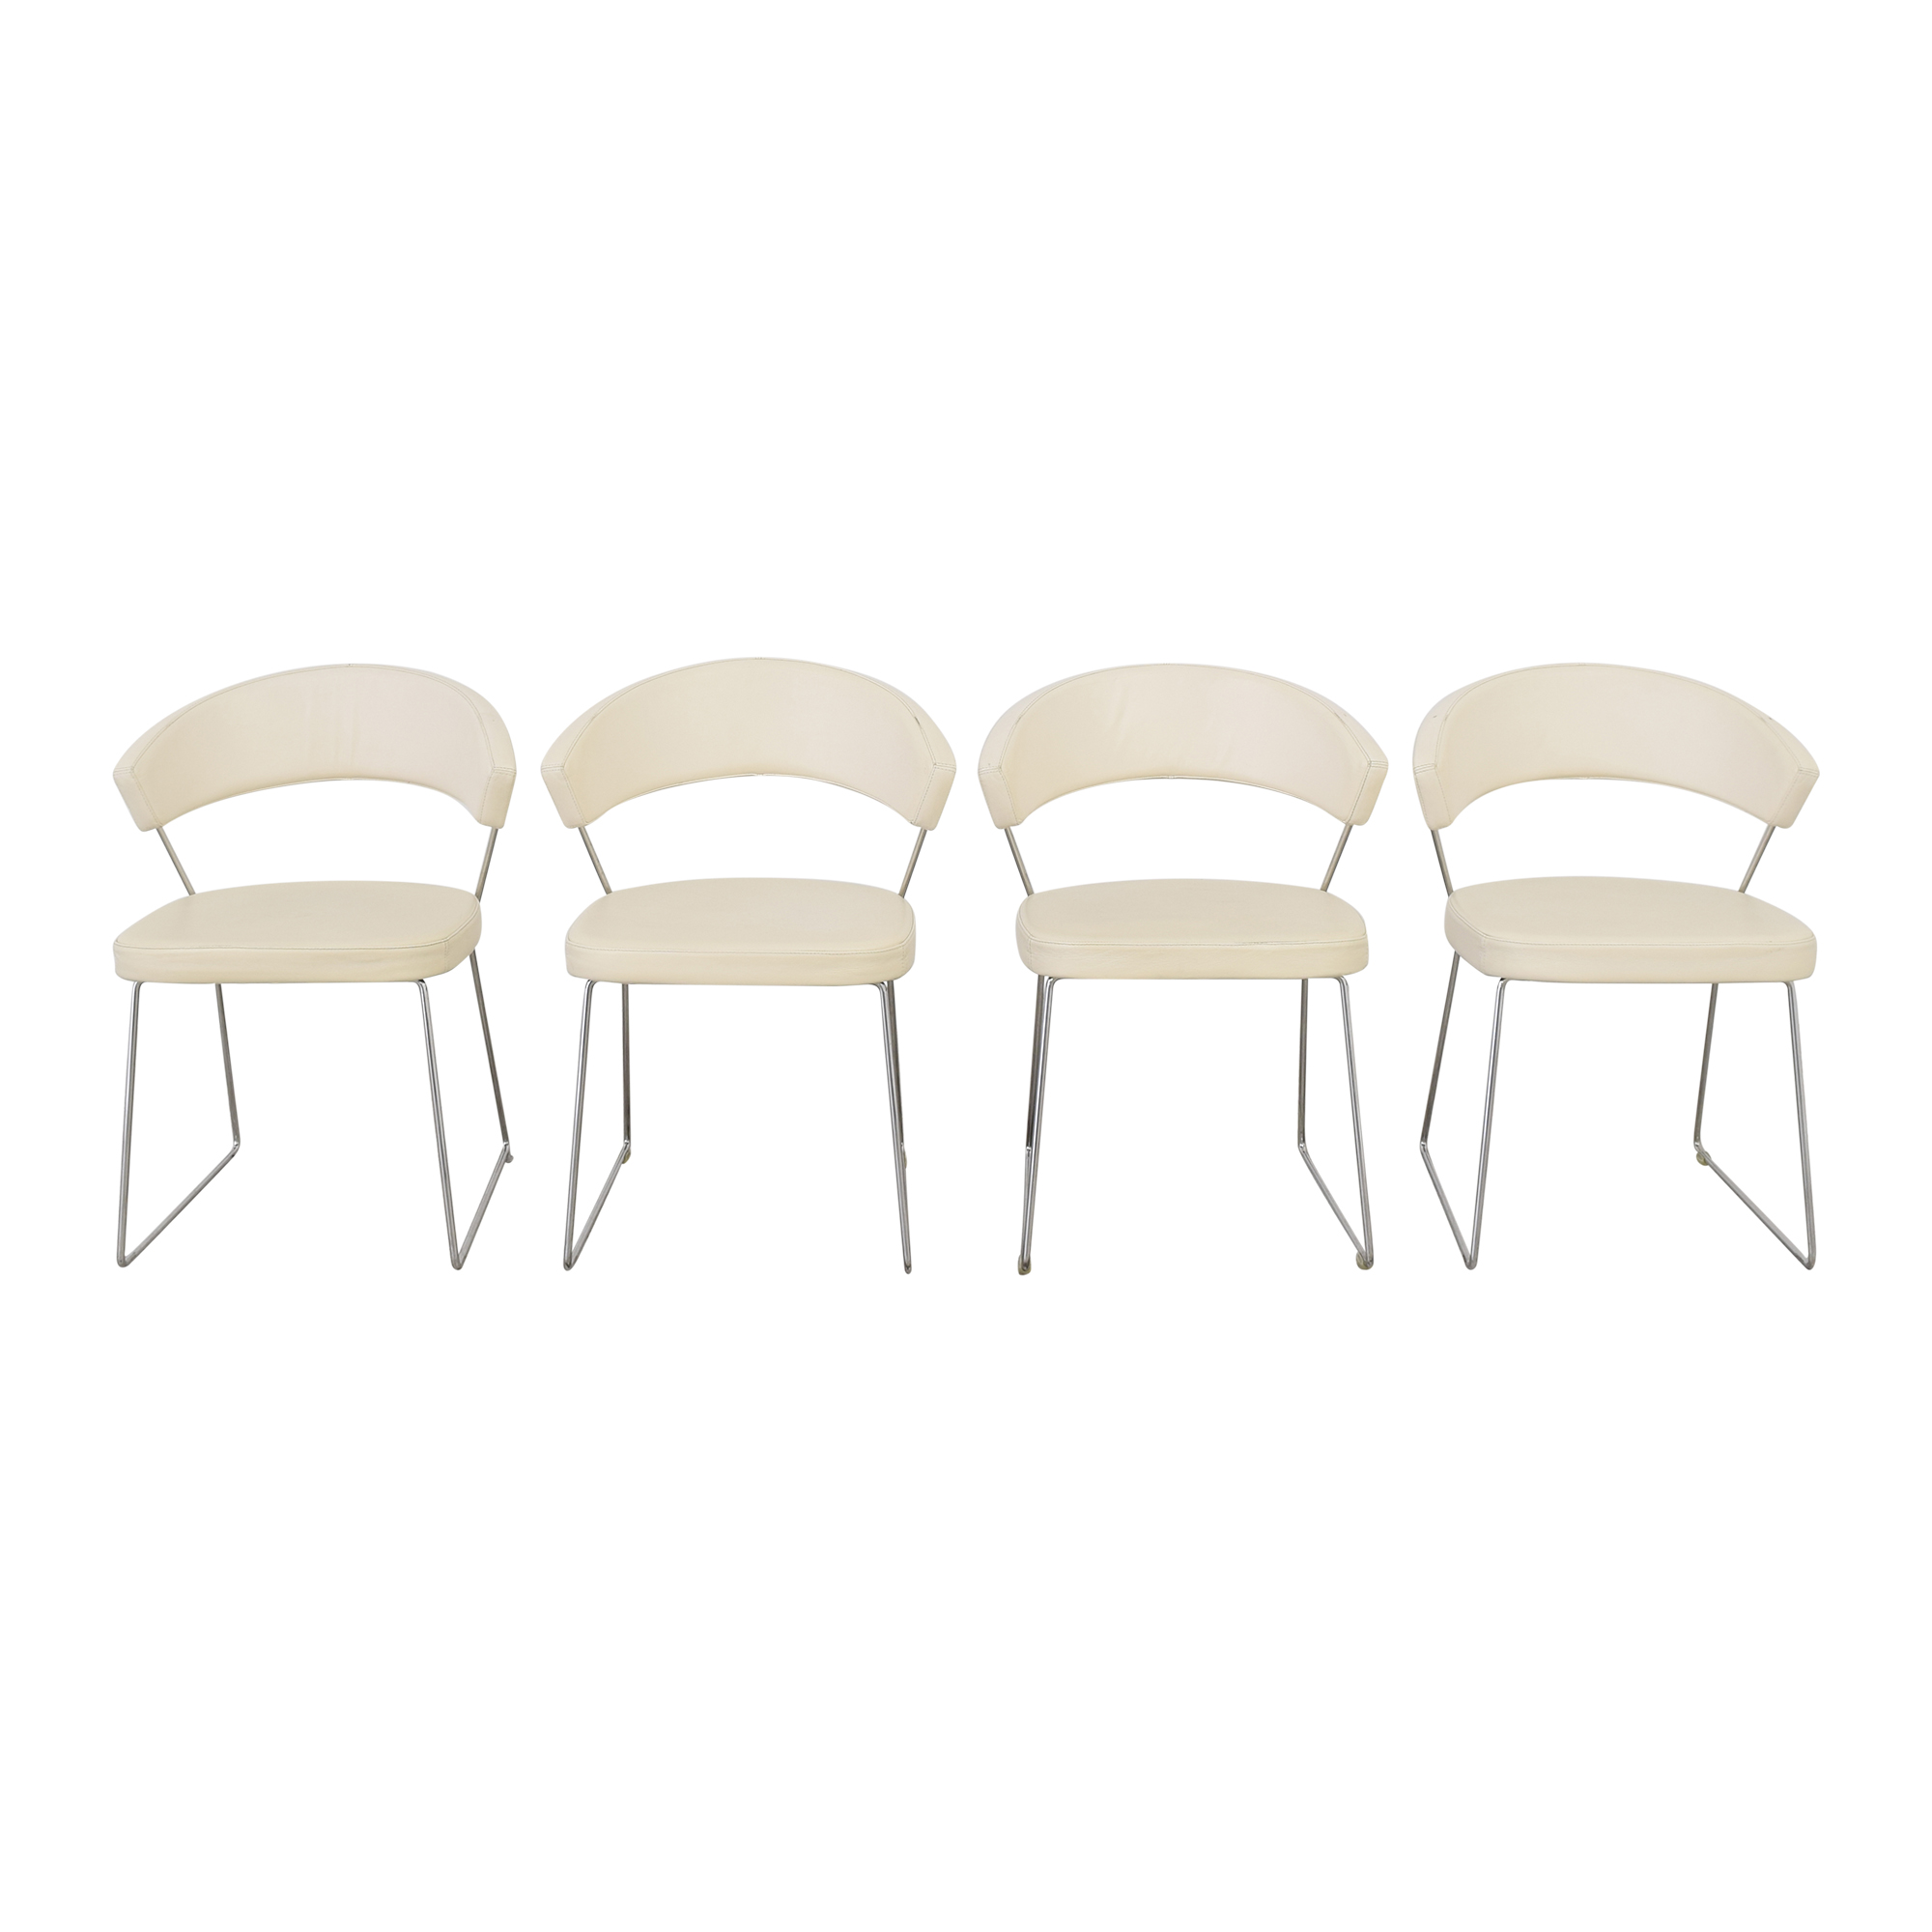 buy Calligaris Icon Modern Dining Chairs Calligaris Dining Chairs